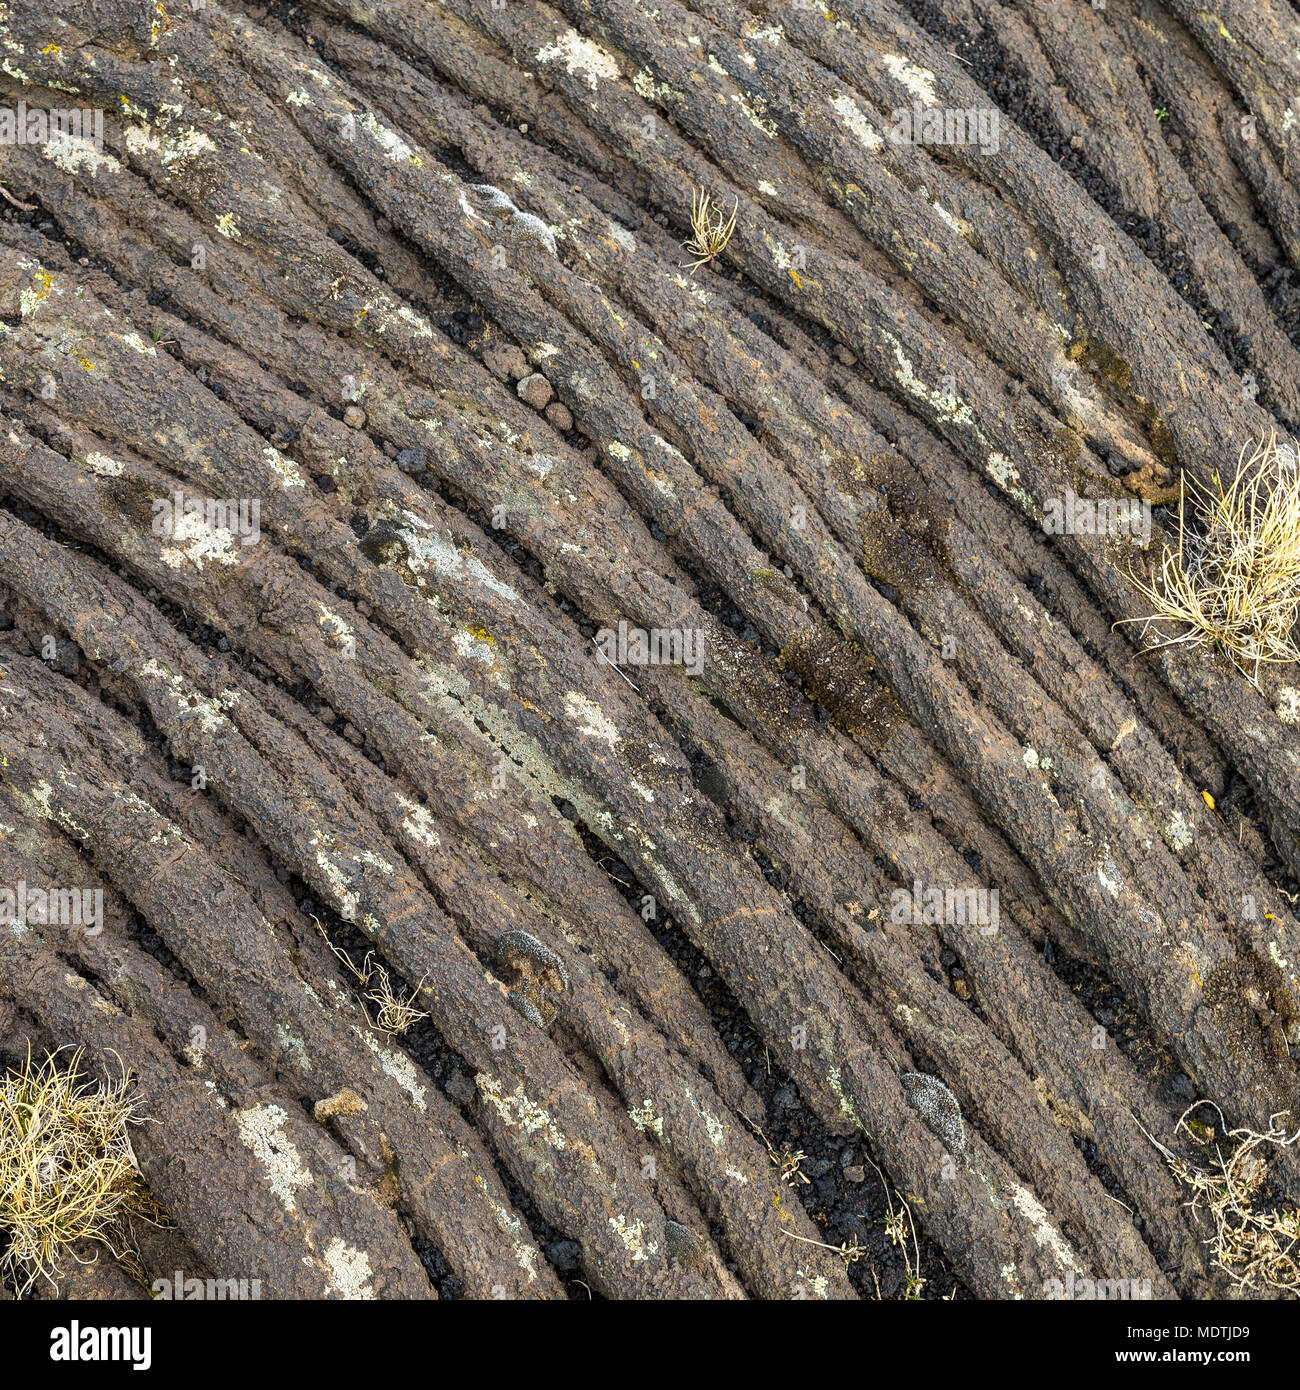 volcanic background or texture, ideal for backgrounds. - Stock Image